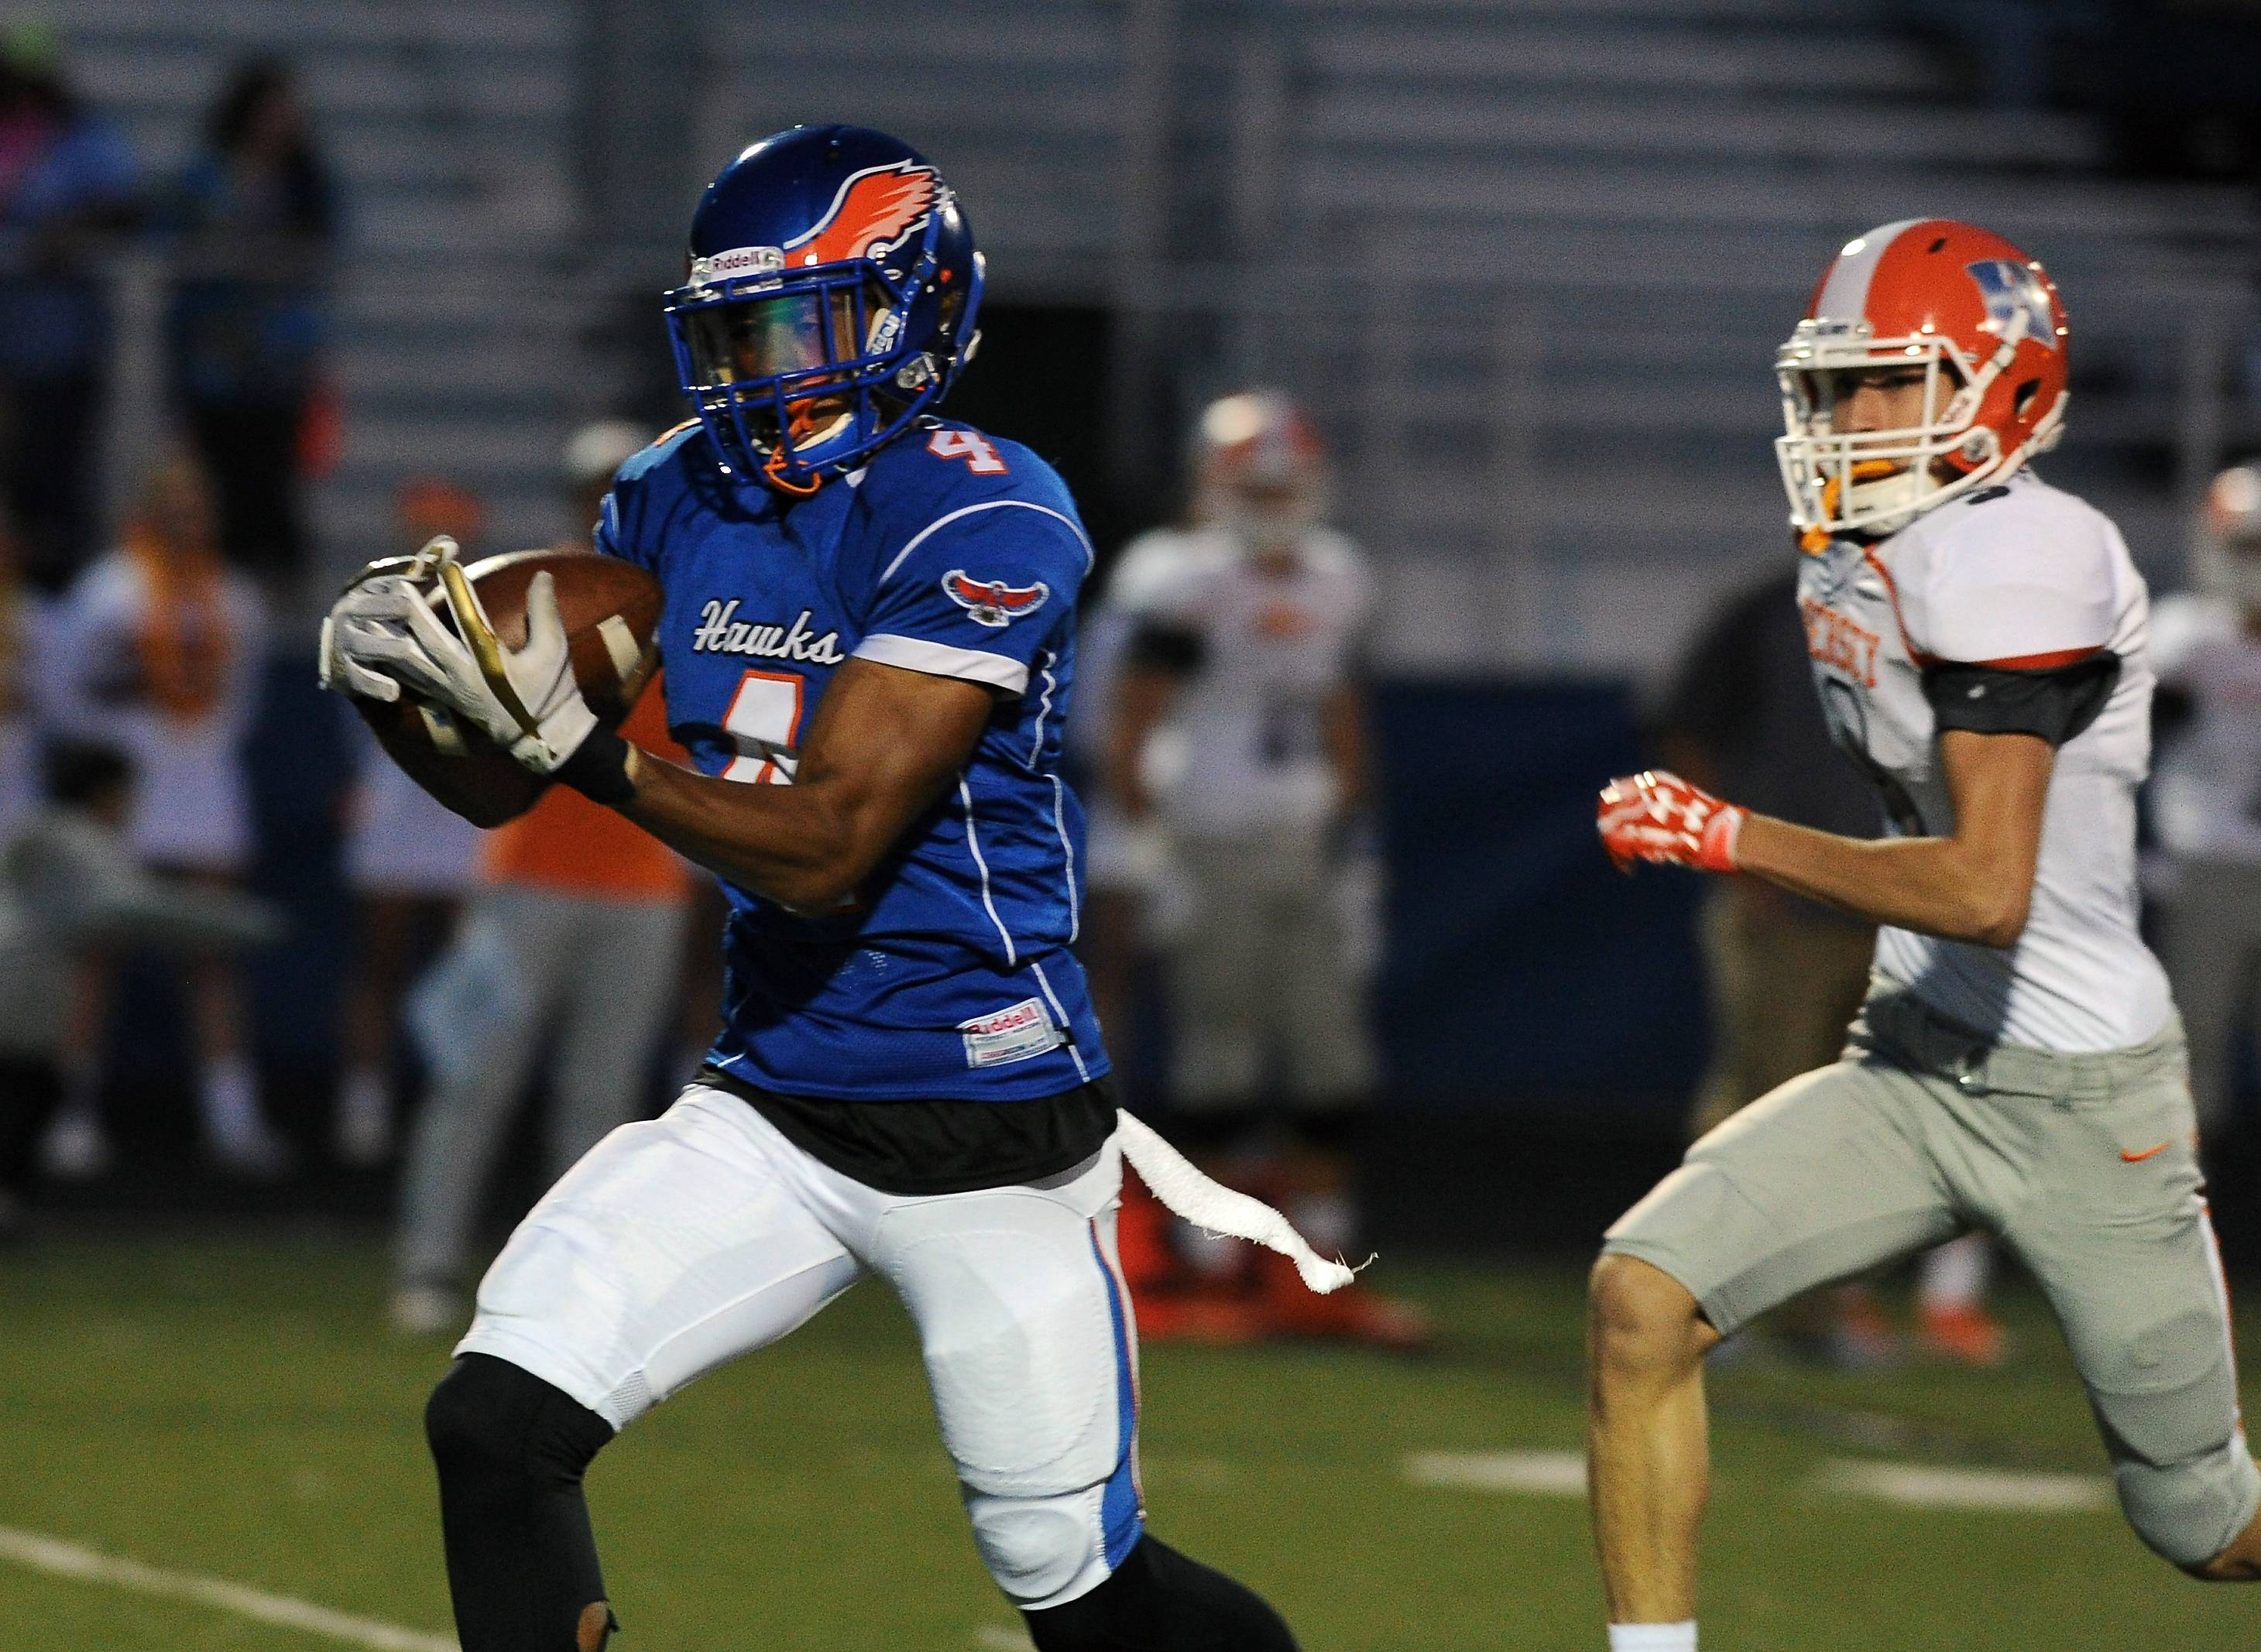 Hoffman Estates' Jayvon Blissett hauls in a touchdown pass in the first quarter against Hersey at Hoffman Estates.